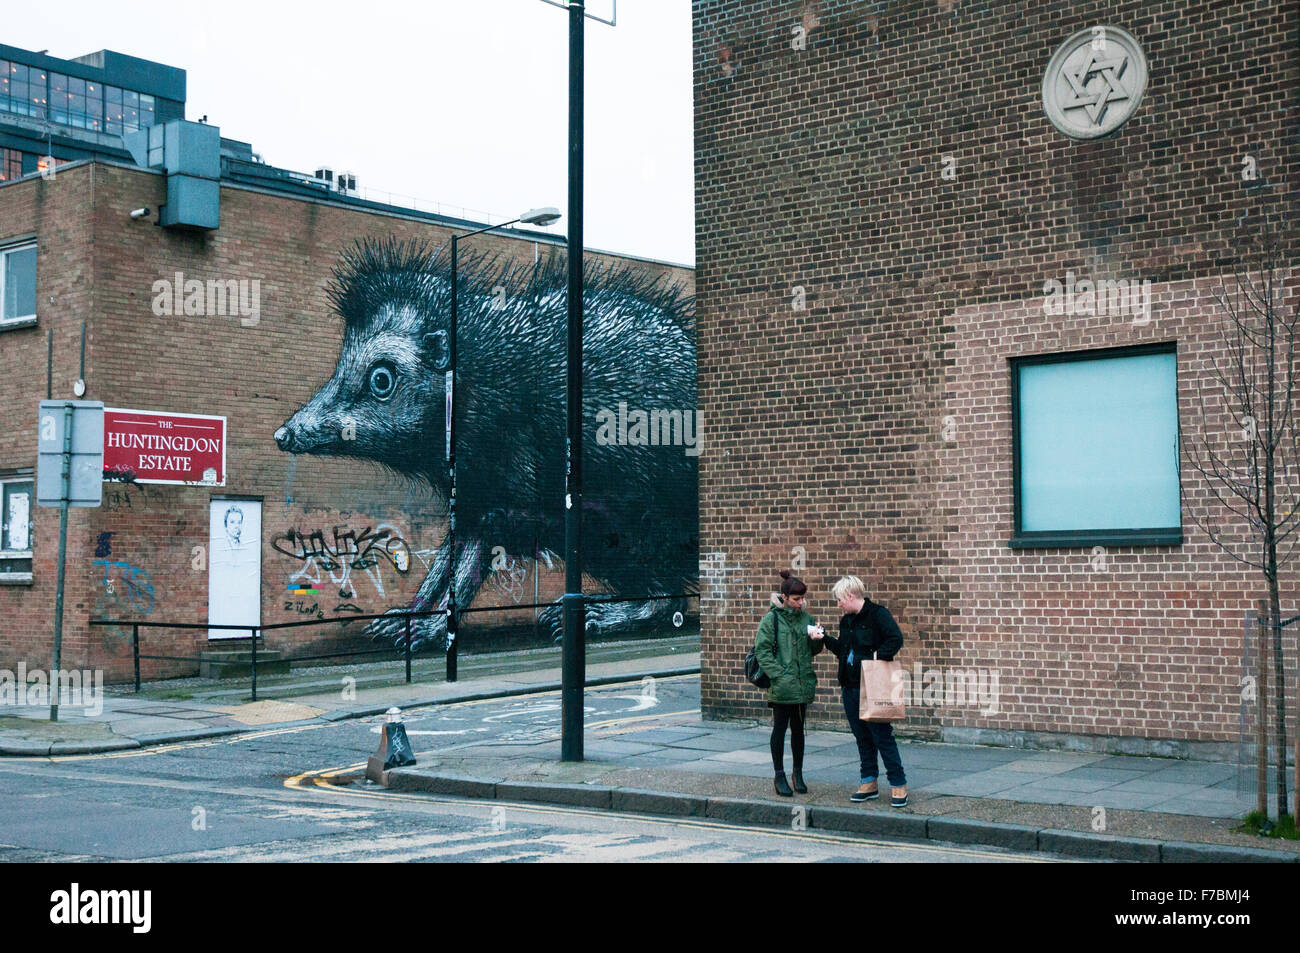 London,UK, 12 /2012.Two women on the street near a big rat mural painting in London East End. - Stock Image